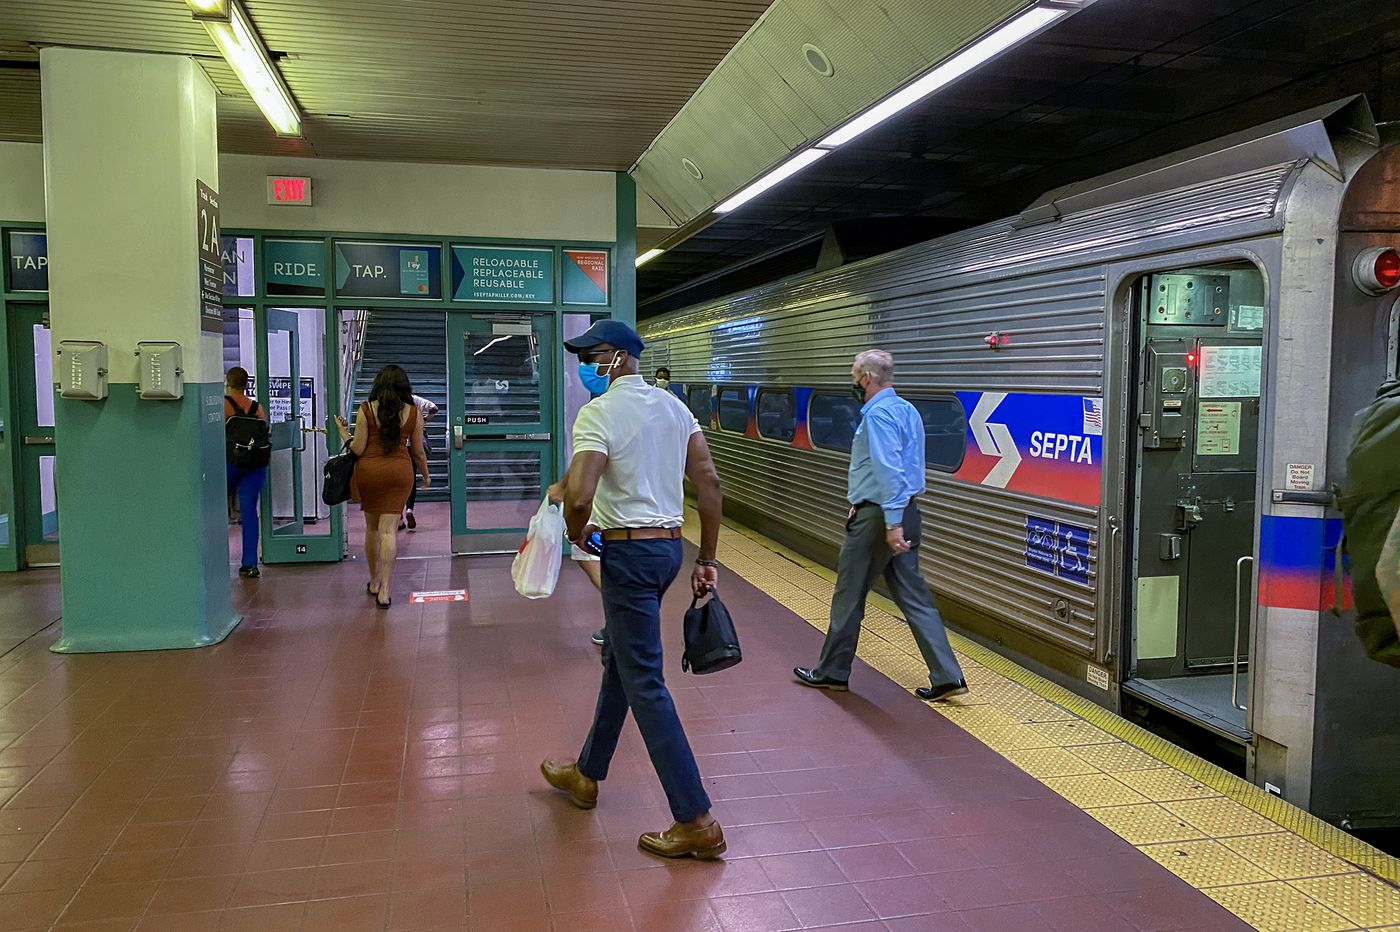 SEPTA phases out paper tickets on Regional Rail, marking the end of an era